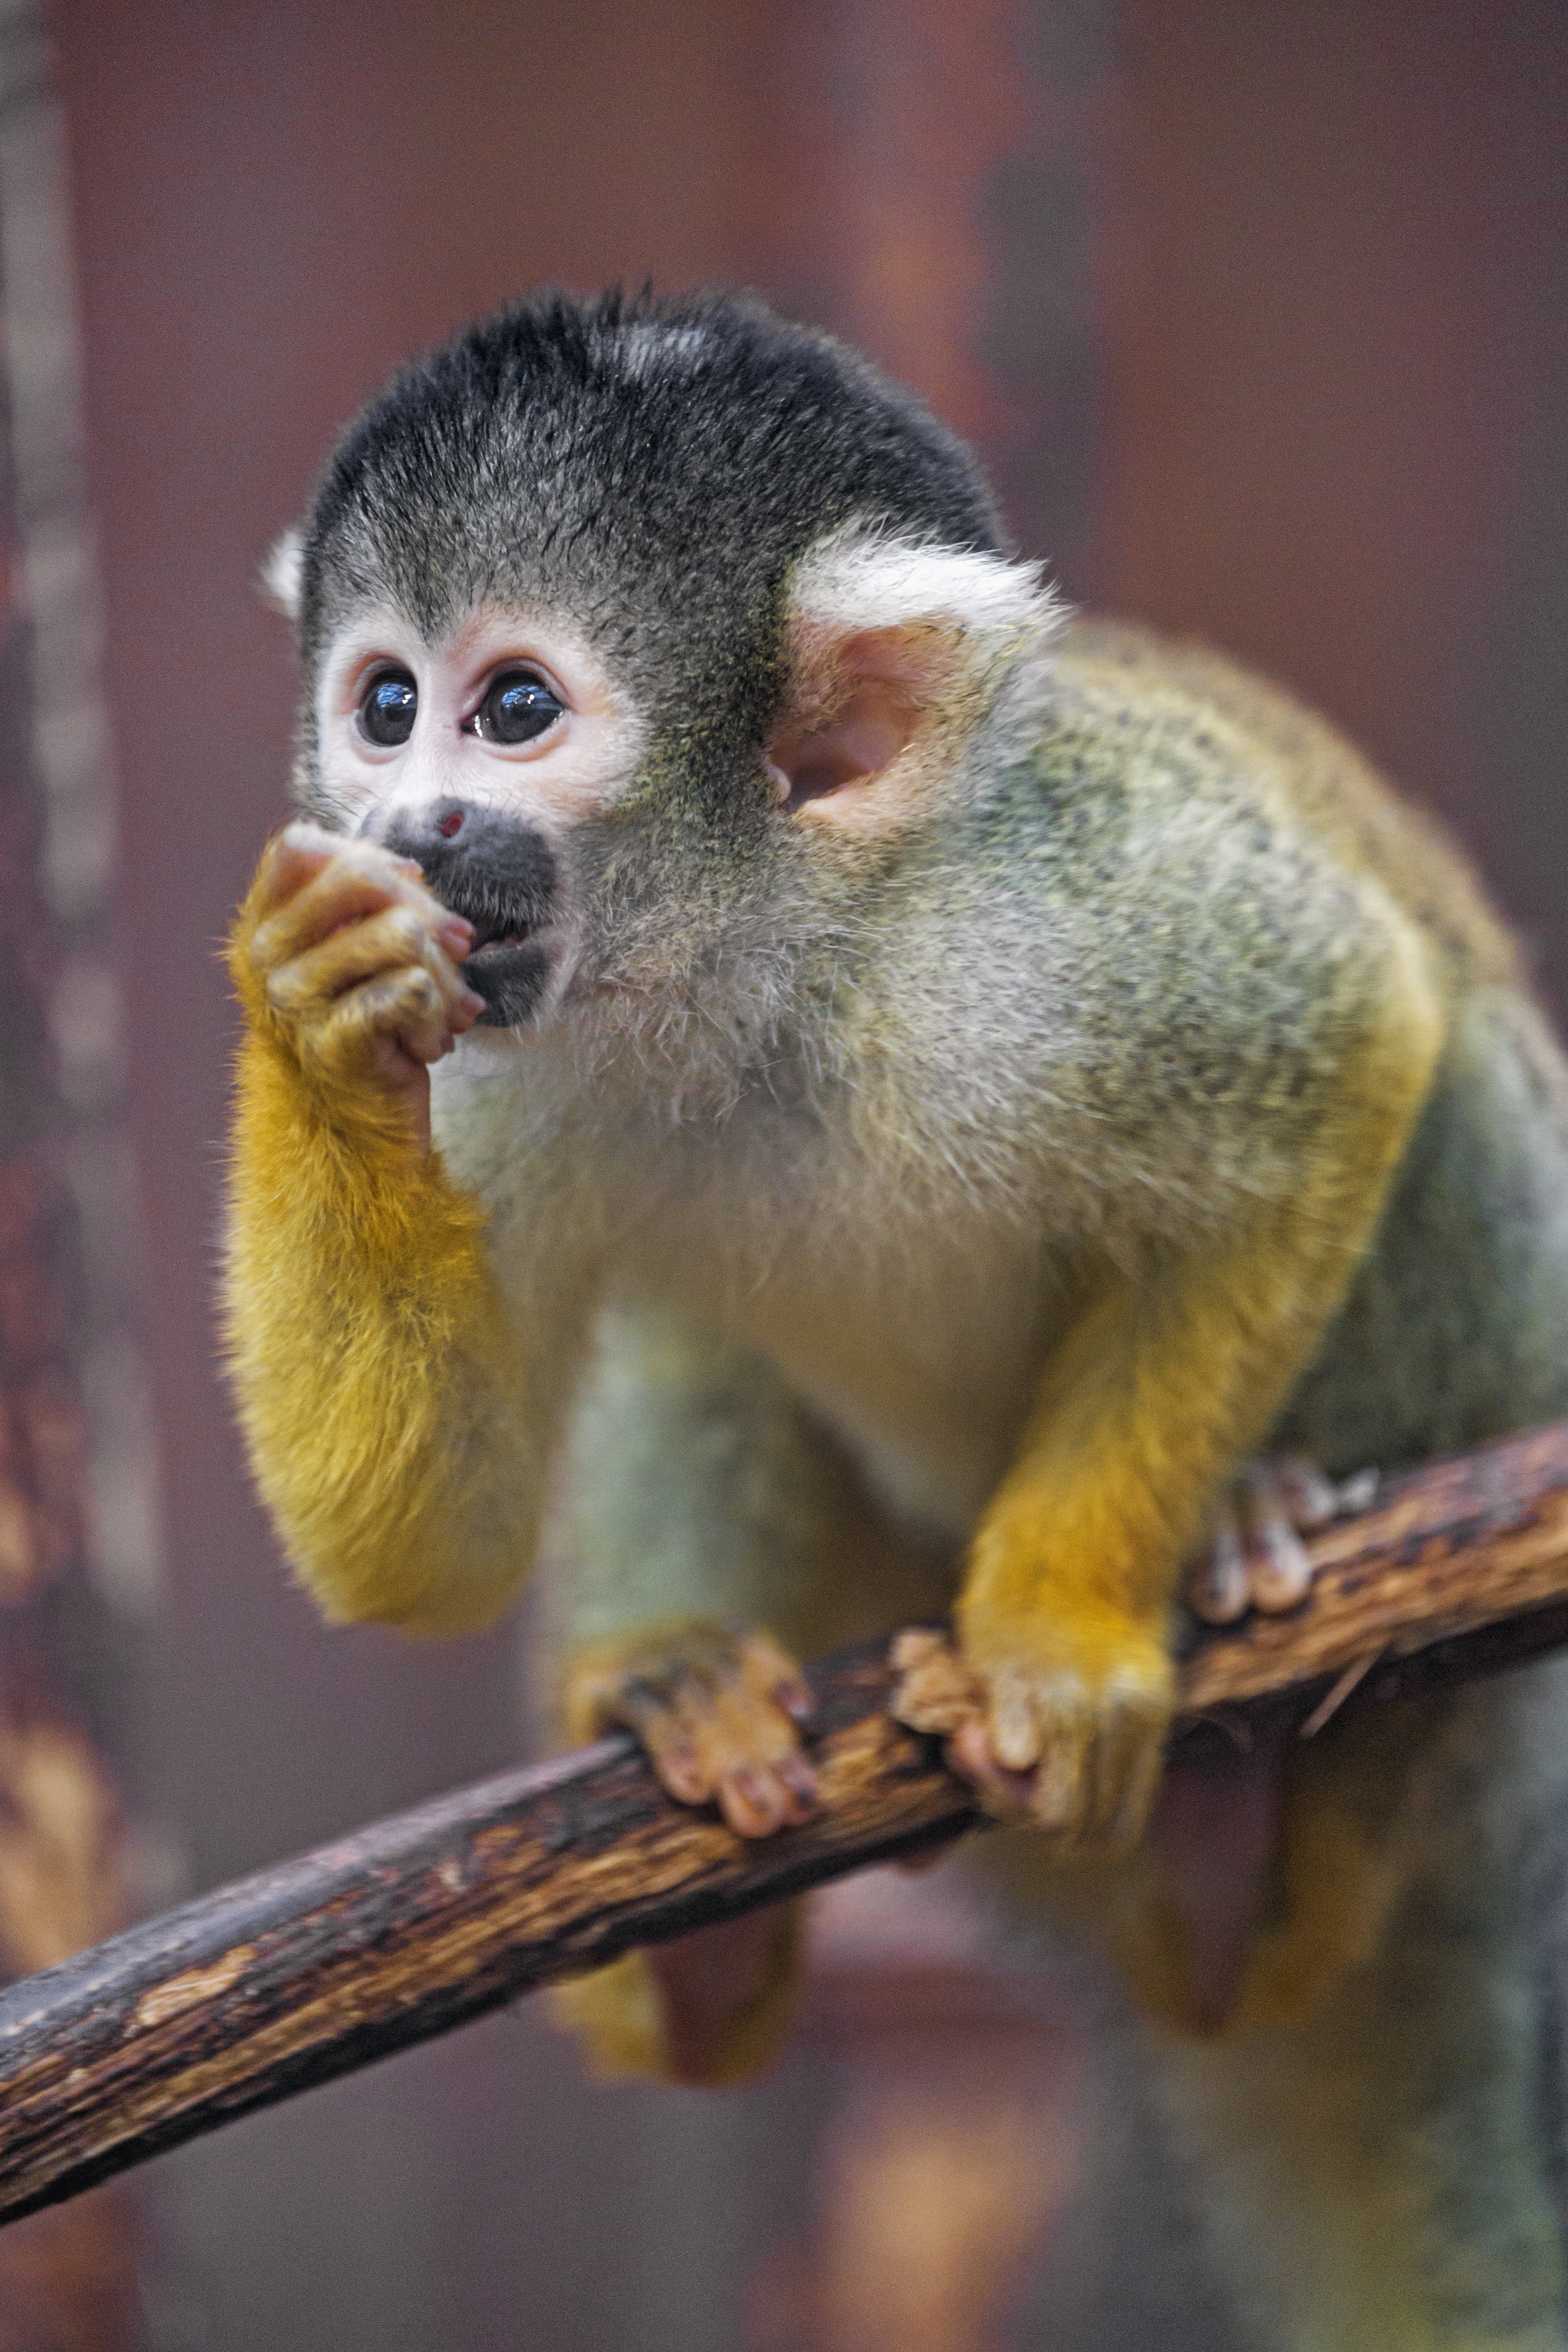 51861 download wallpaper Animals, Monkey, Marmoset, Young, Joey, Nice, Sweetheart, Sight, Opinion screensavers and pictures for free